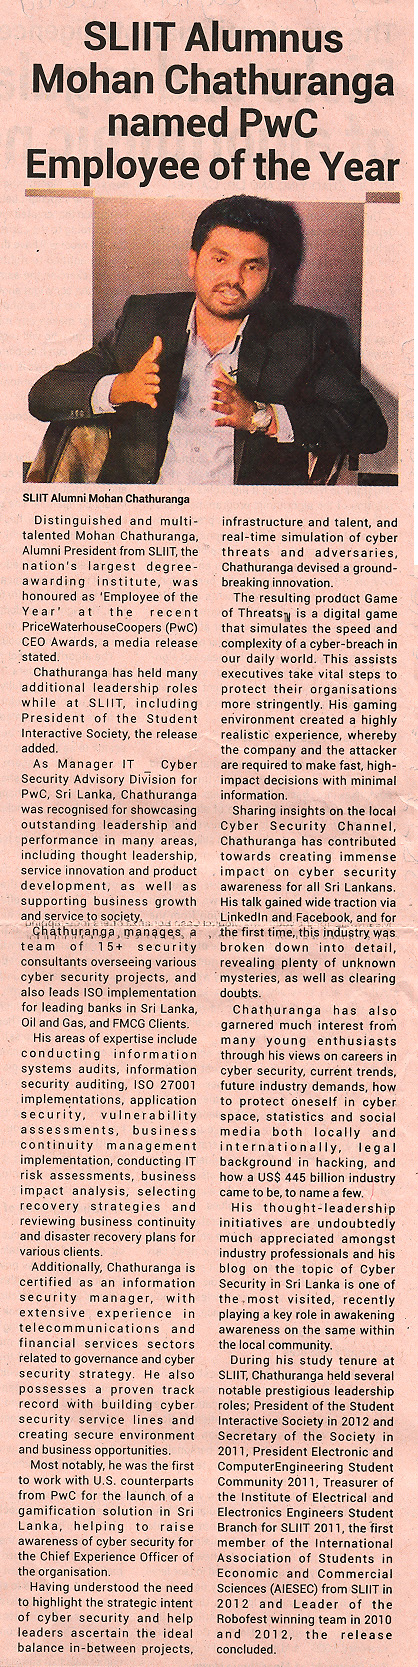 SLIIT-Alumnus-Mohan-Chathuranga-named-PwC-Employee-of-the-Year-Ceylon-Today-09-01-2019